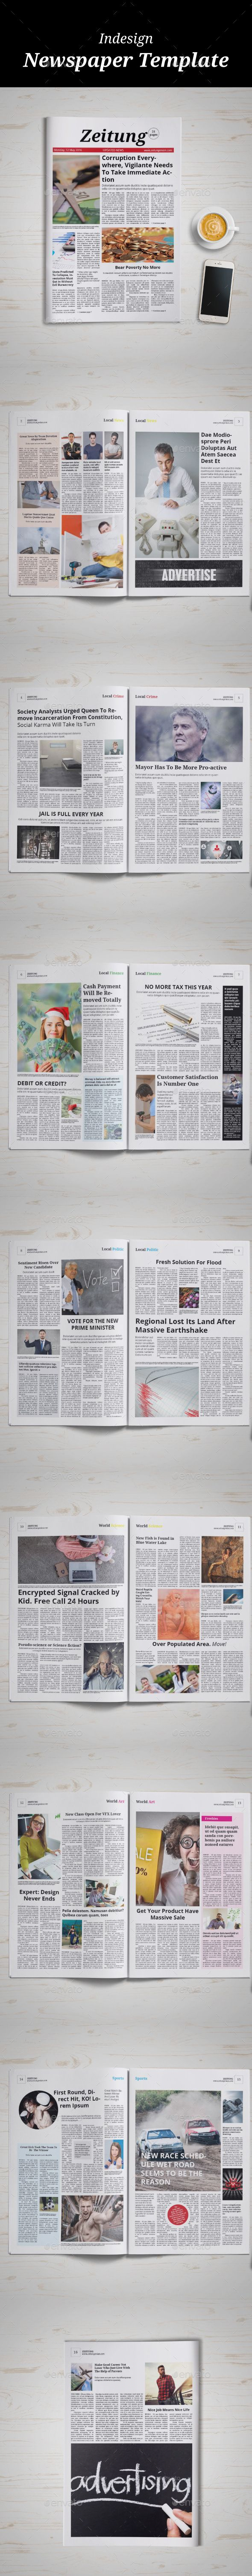 Tabloid Newspaper Template Indesign Free Download. 20 Minutos Layout  Editorial Design Pinterest Editorial .